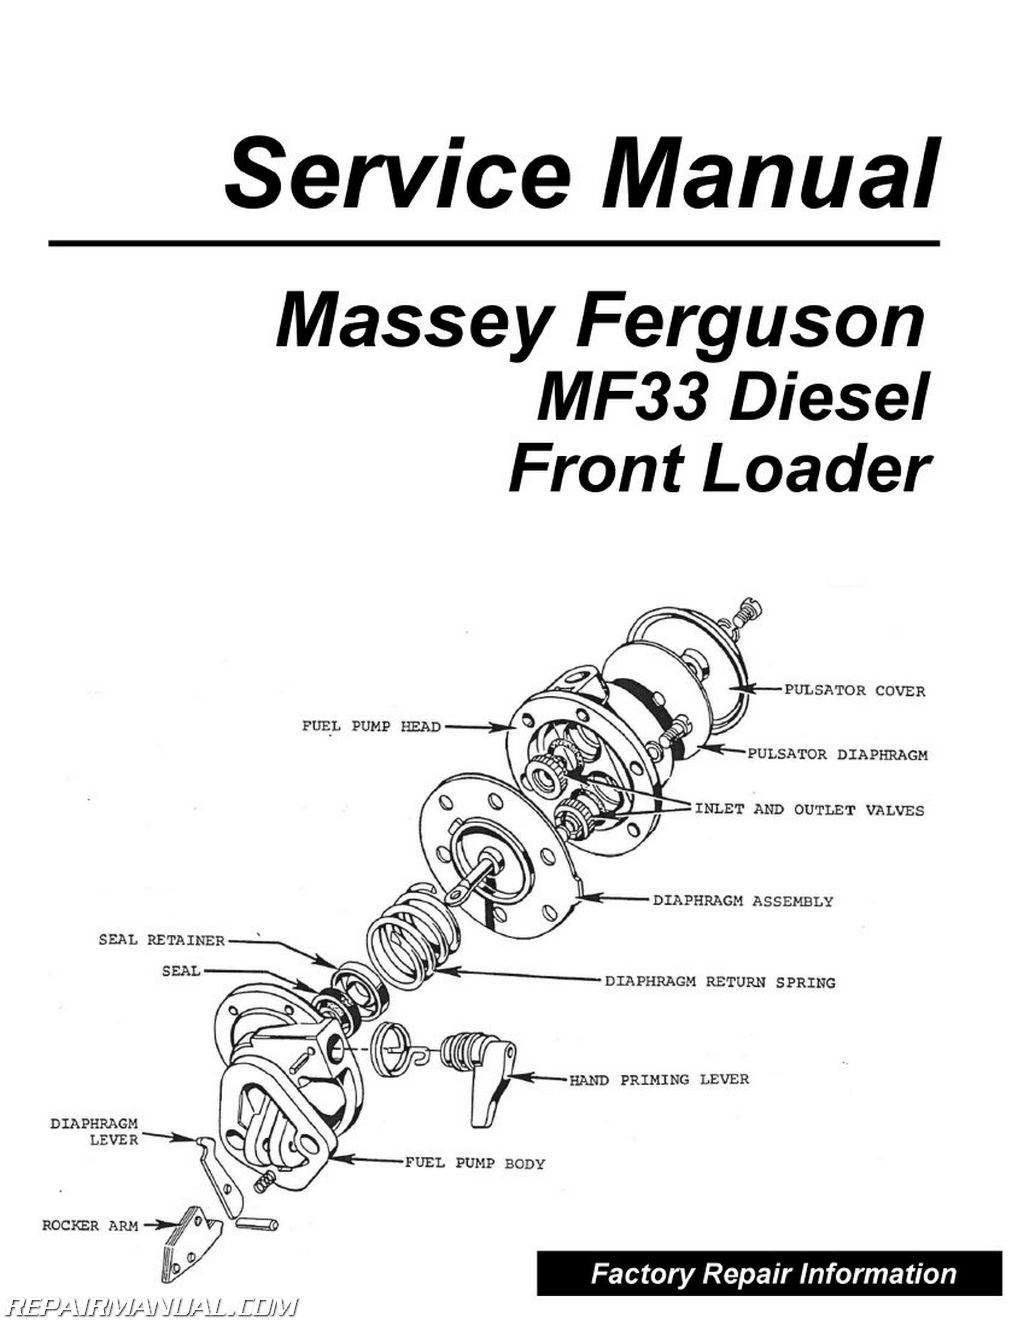 Massey Ferguson MF33 DSL Front Loader Service Manual Table of Contents